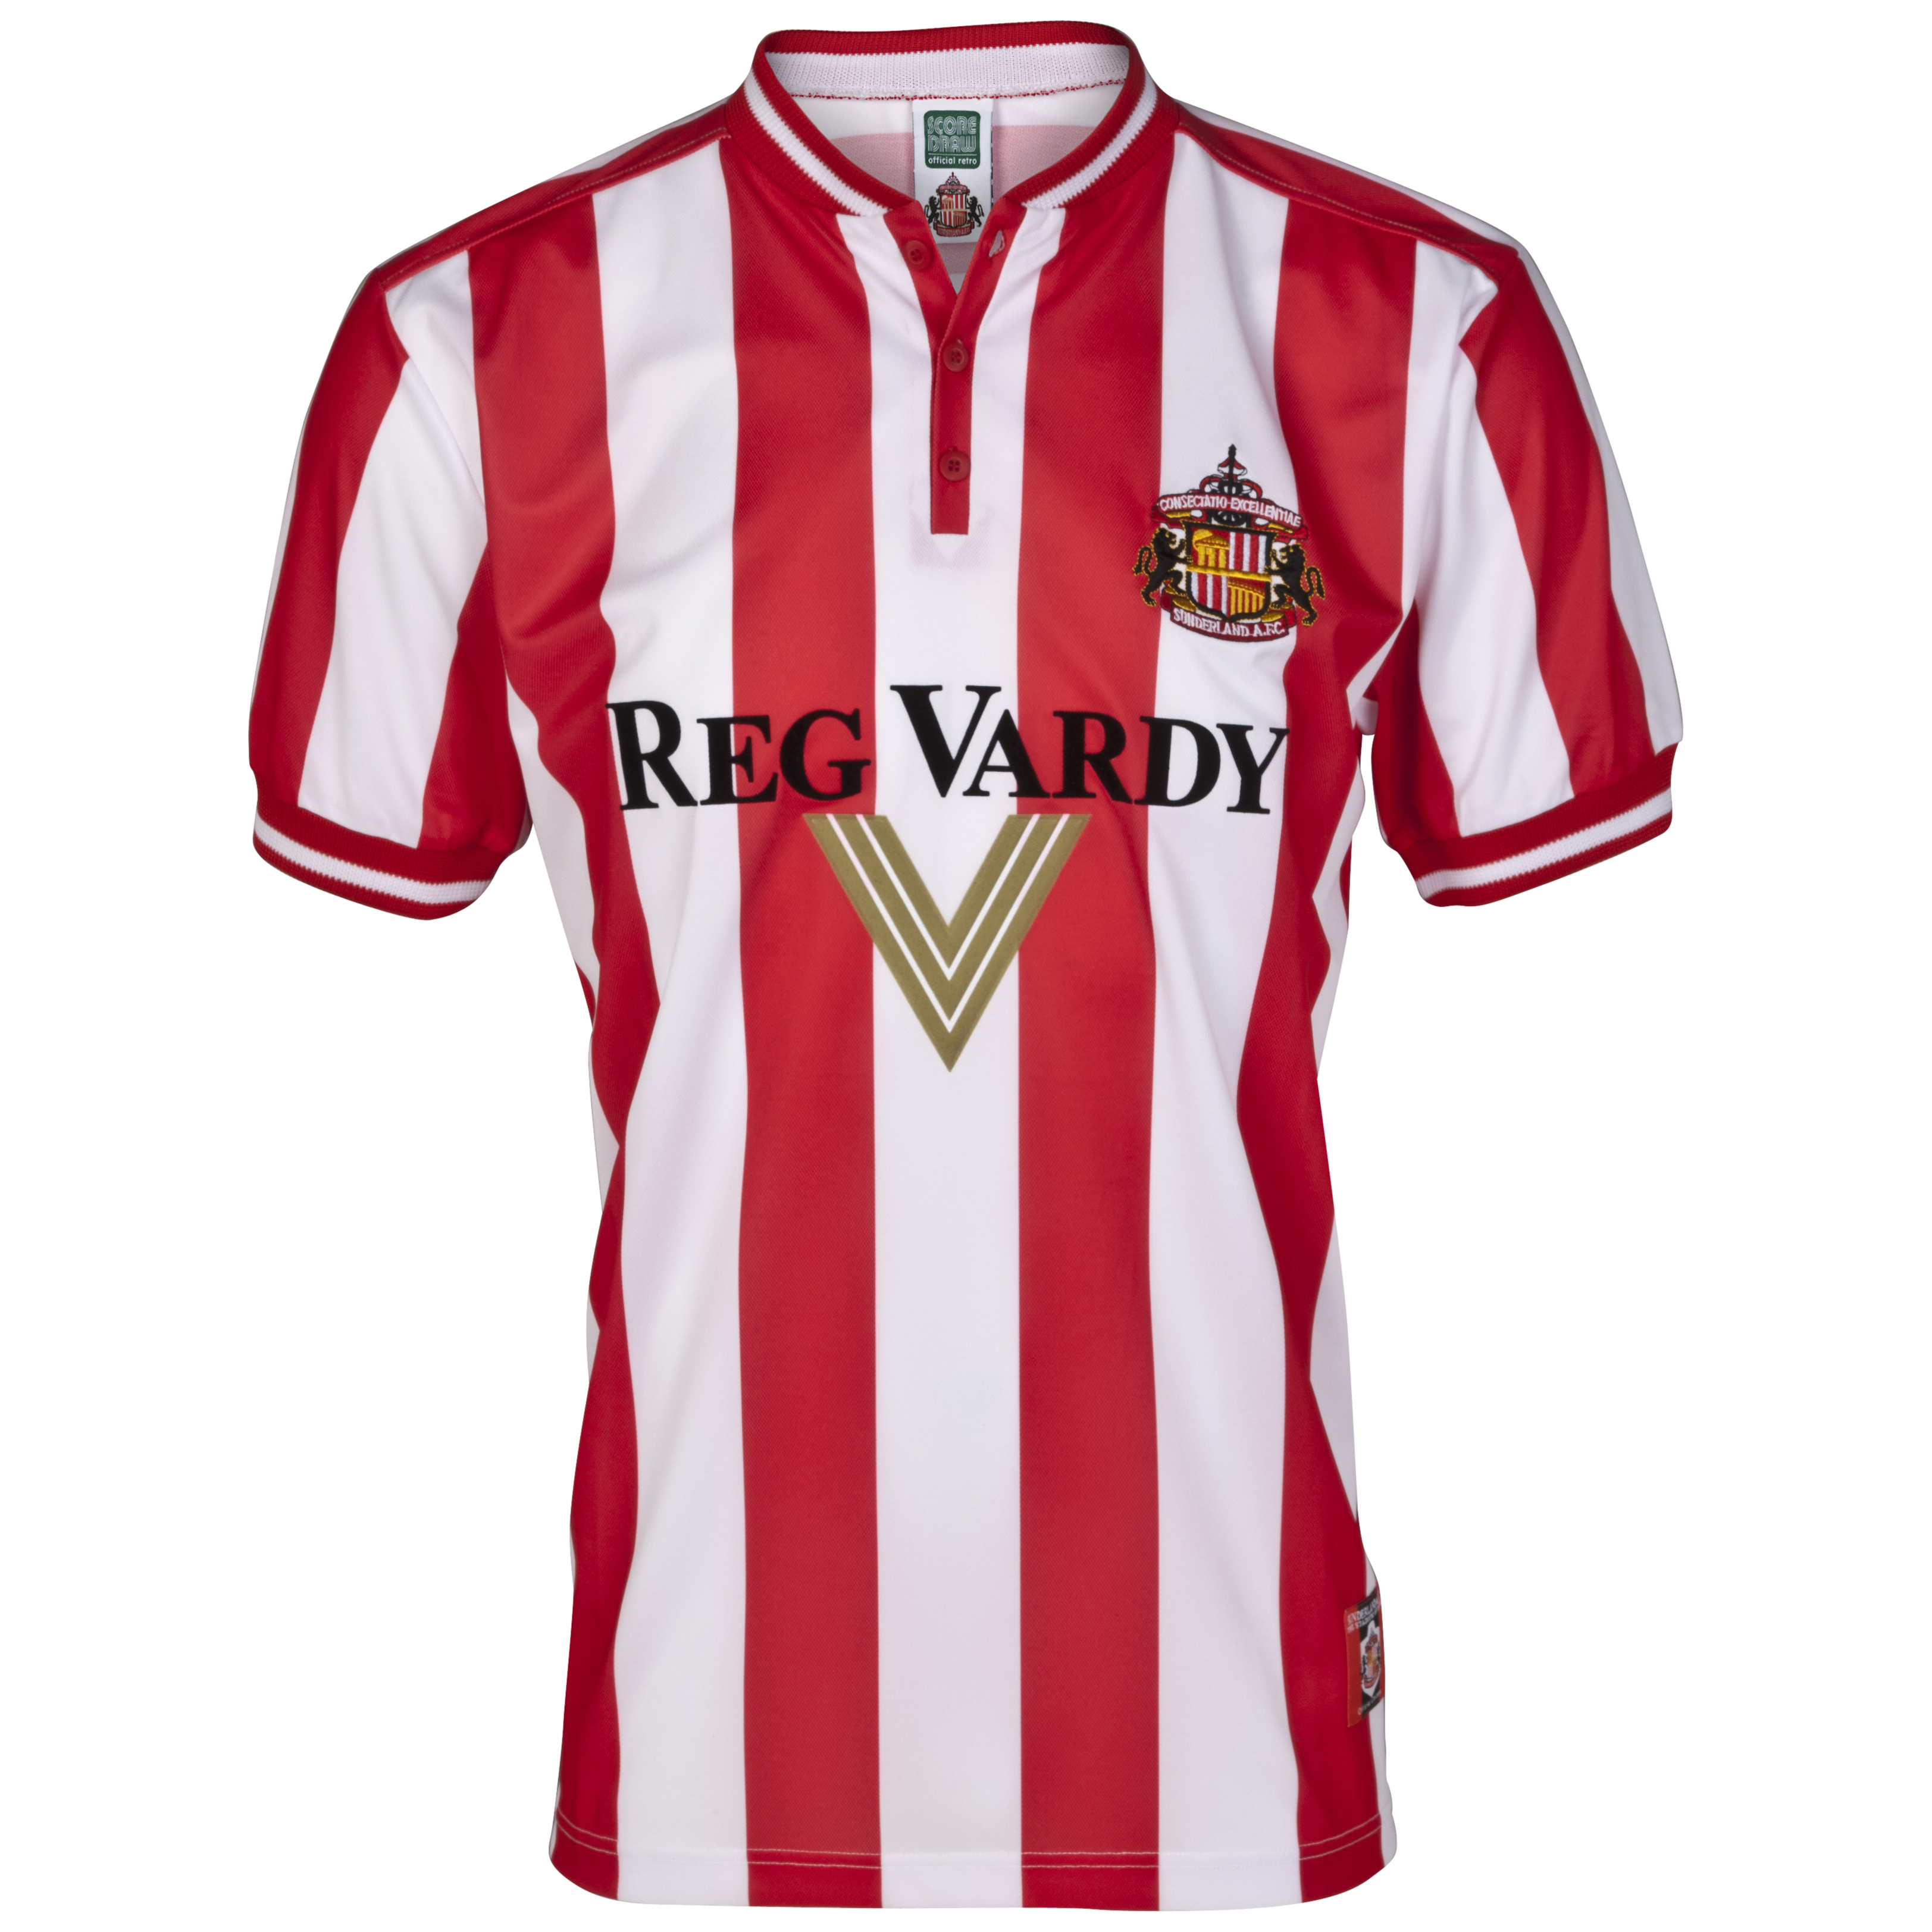 Sunderland 2000 Home Shirt